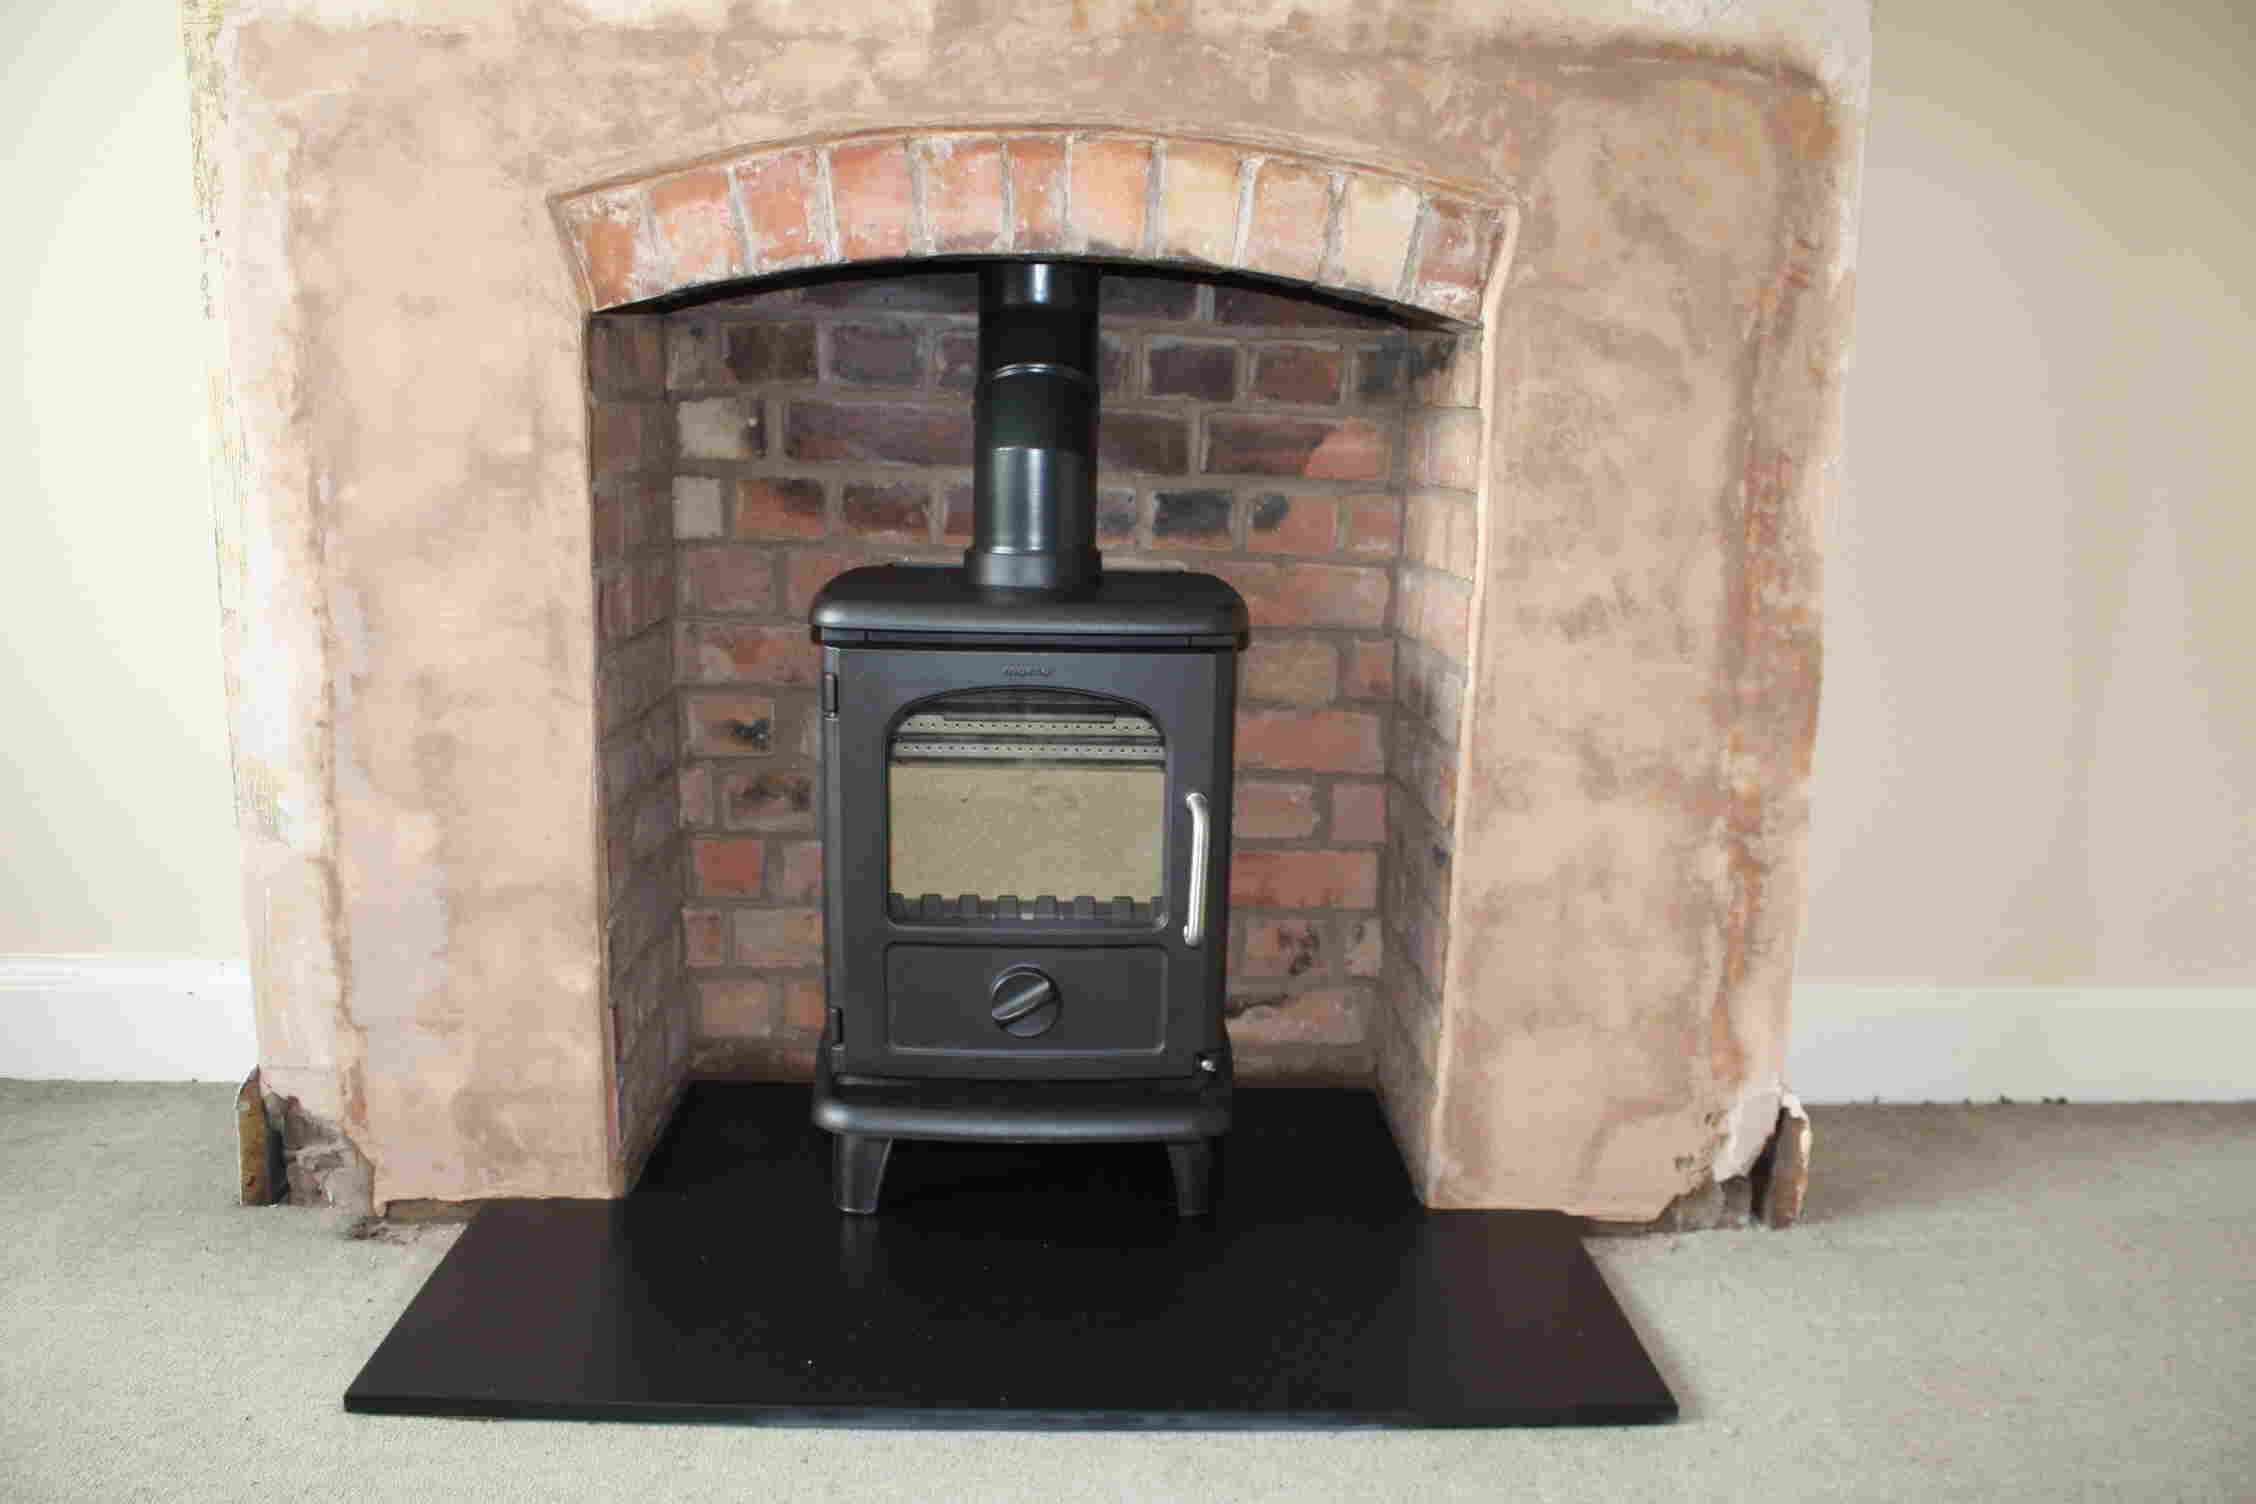 Wood stove in fireplace opening for cabin tinysmaller houses and wood stove in fireplace opening for cabin teraionfo